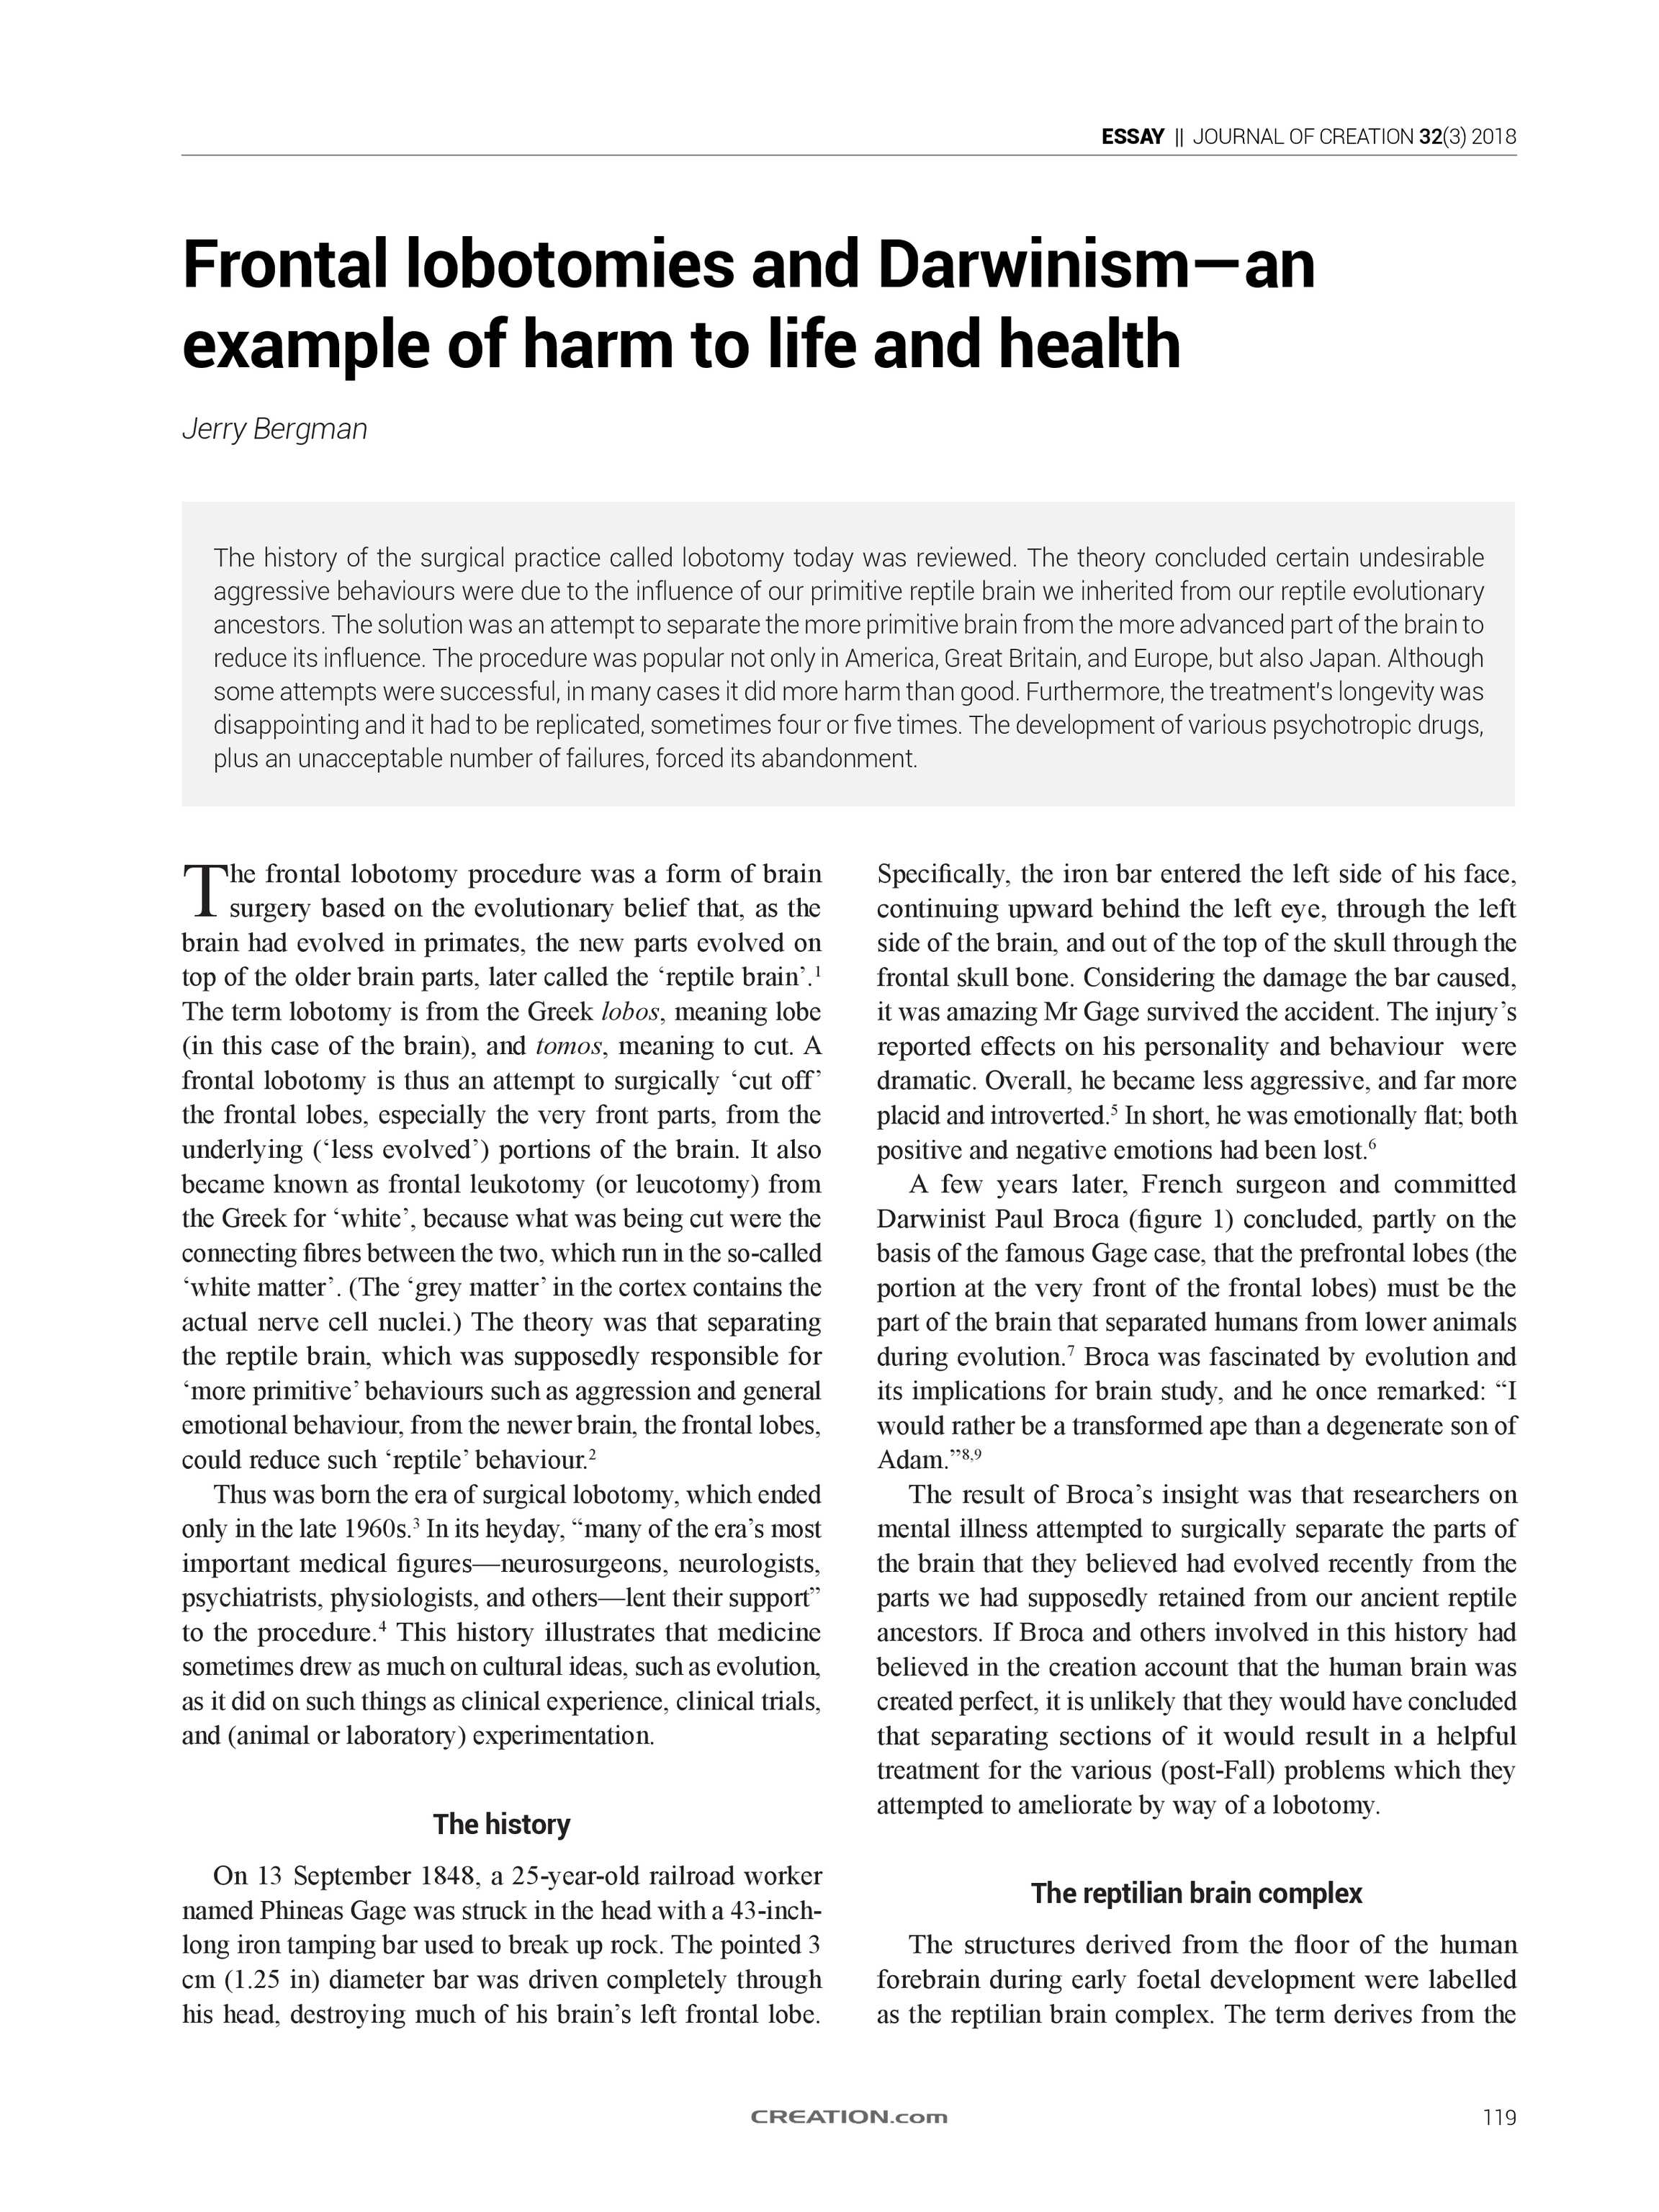 Journal of Creation - 2018 Volume 32 Issue 3 - page 119